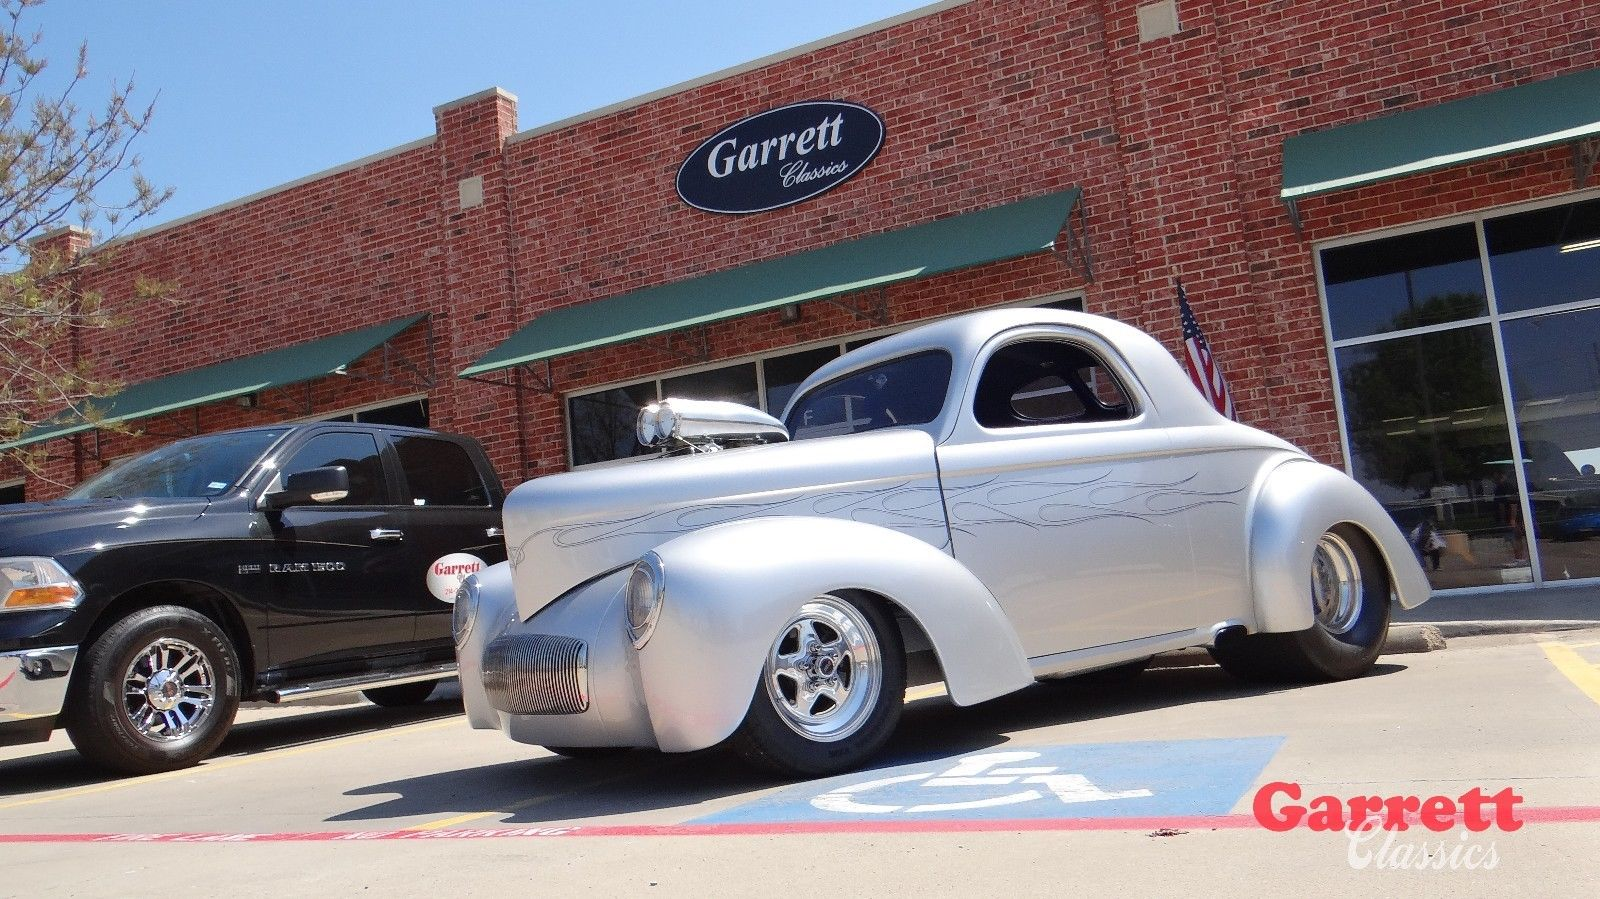 Hot rods for sale - Google+